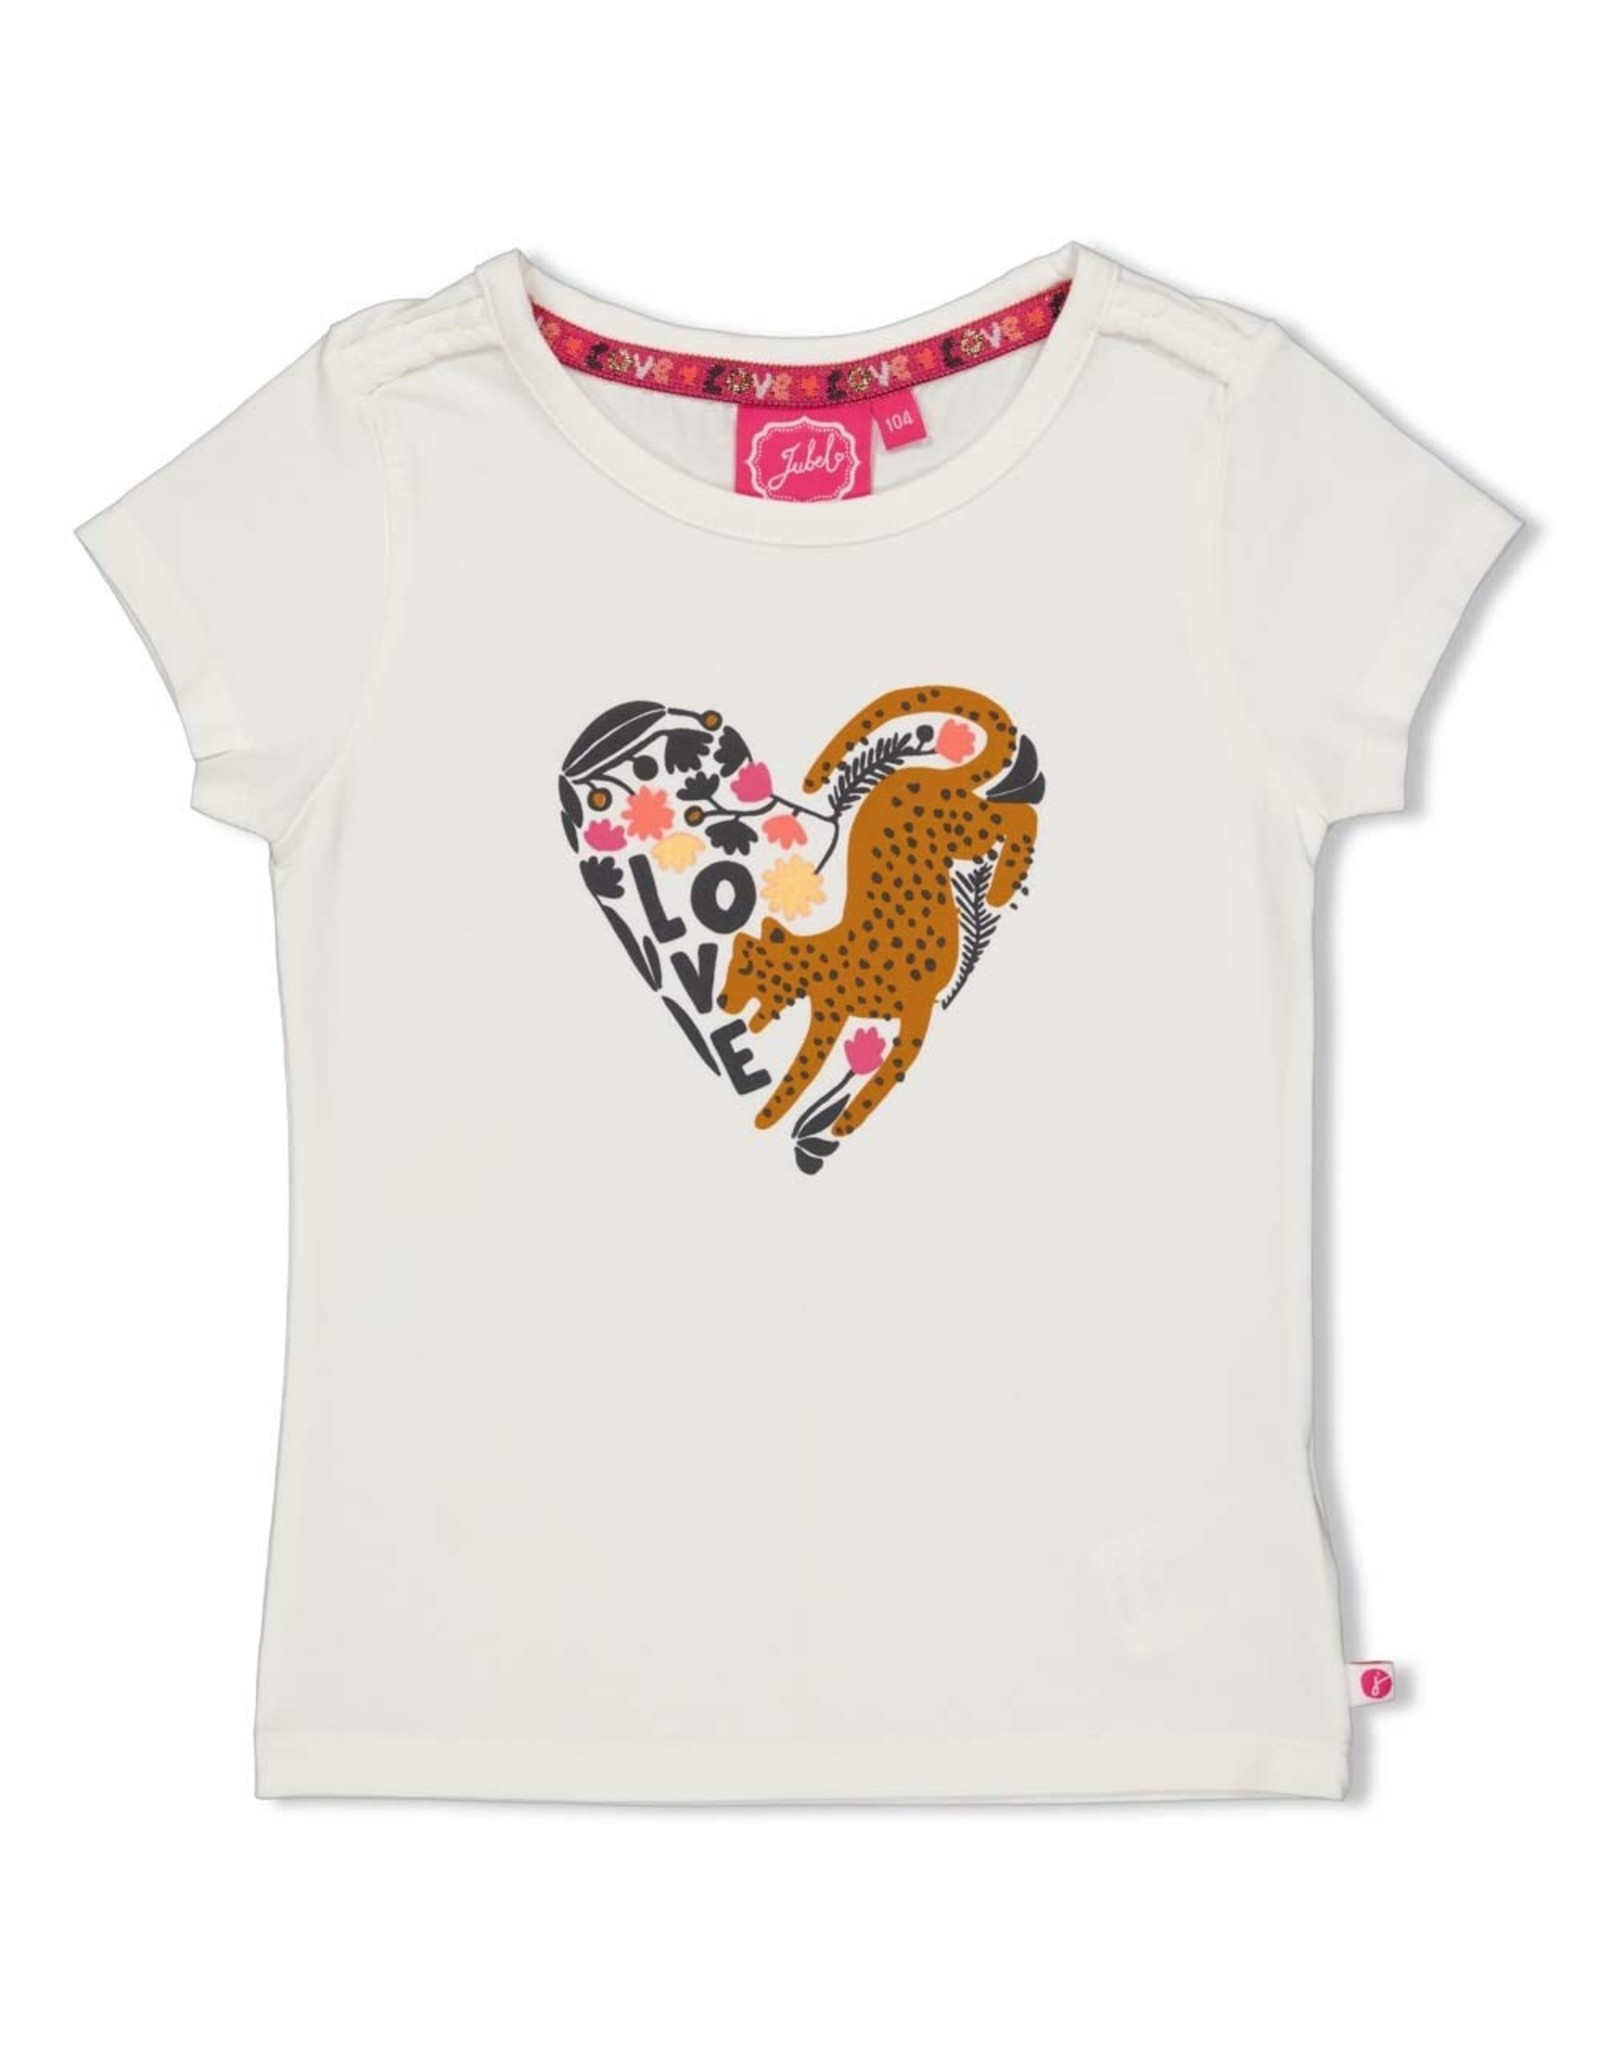 Jubel T-shirt offwhite  - Whoopsie Daisy